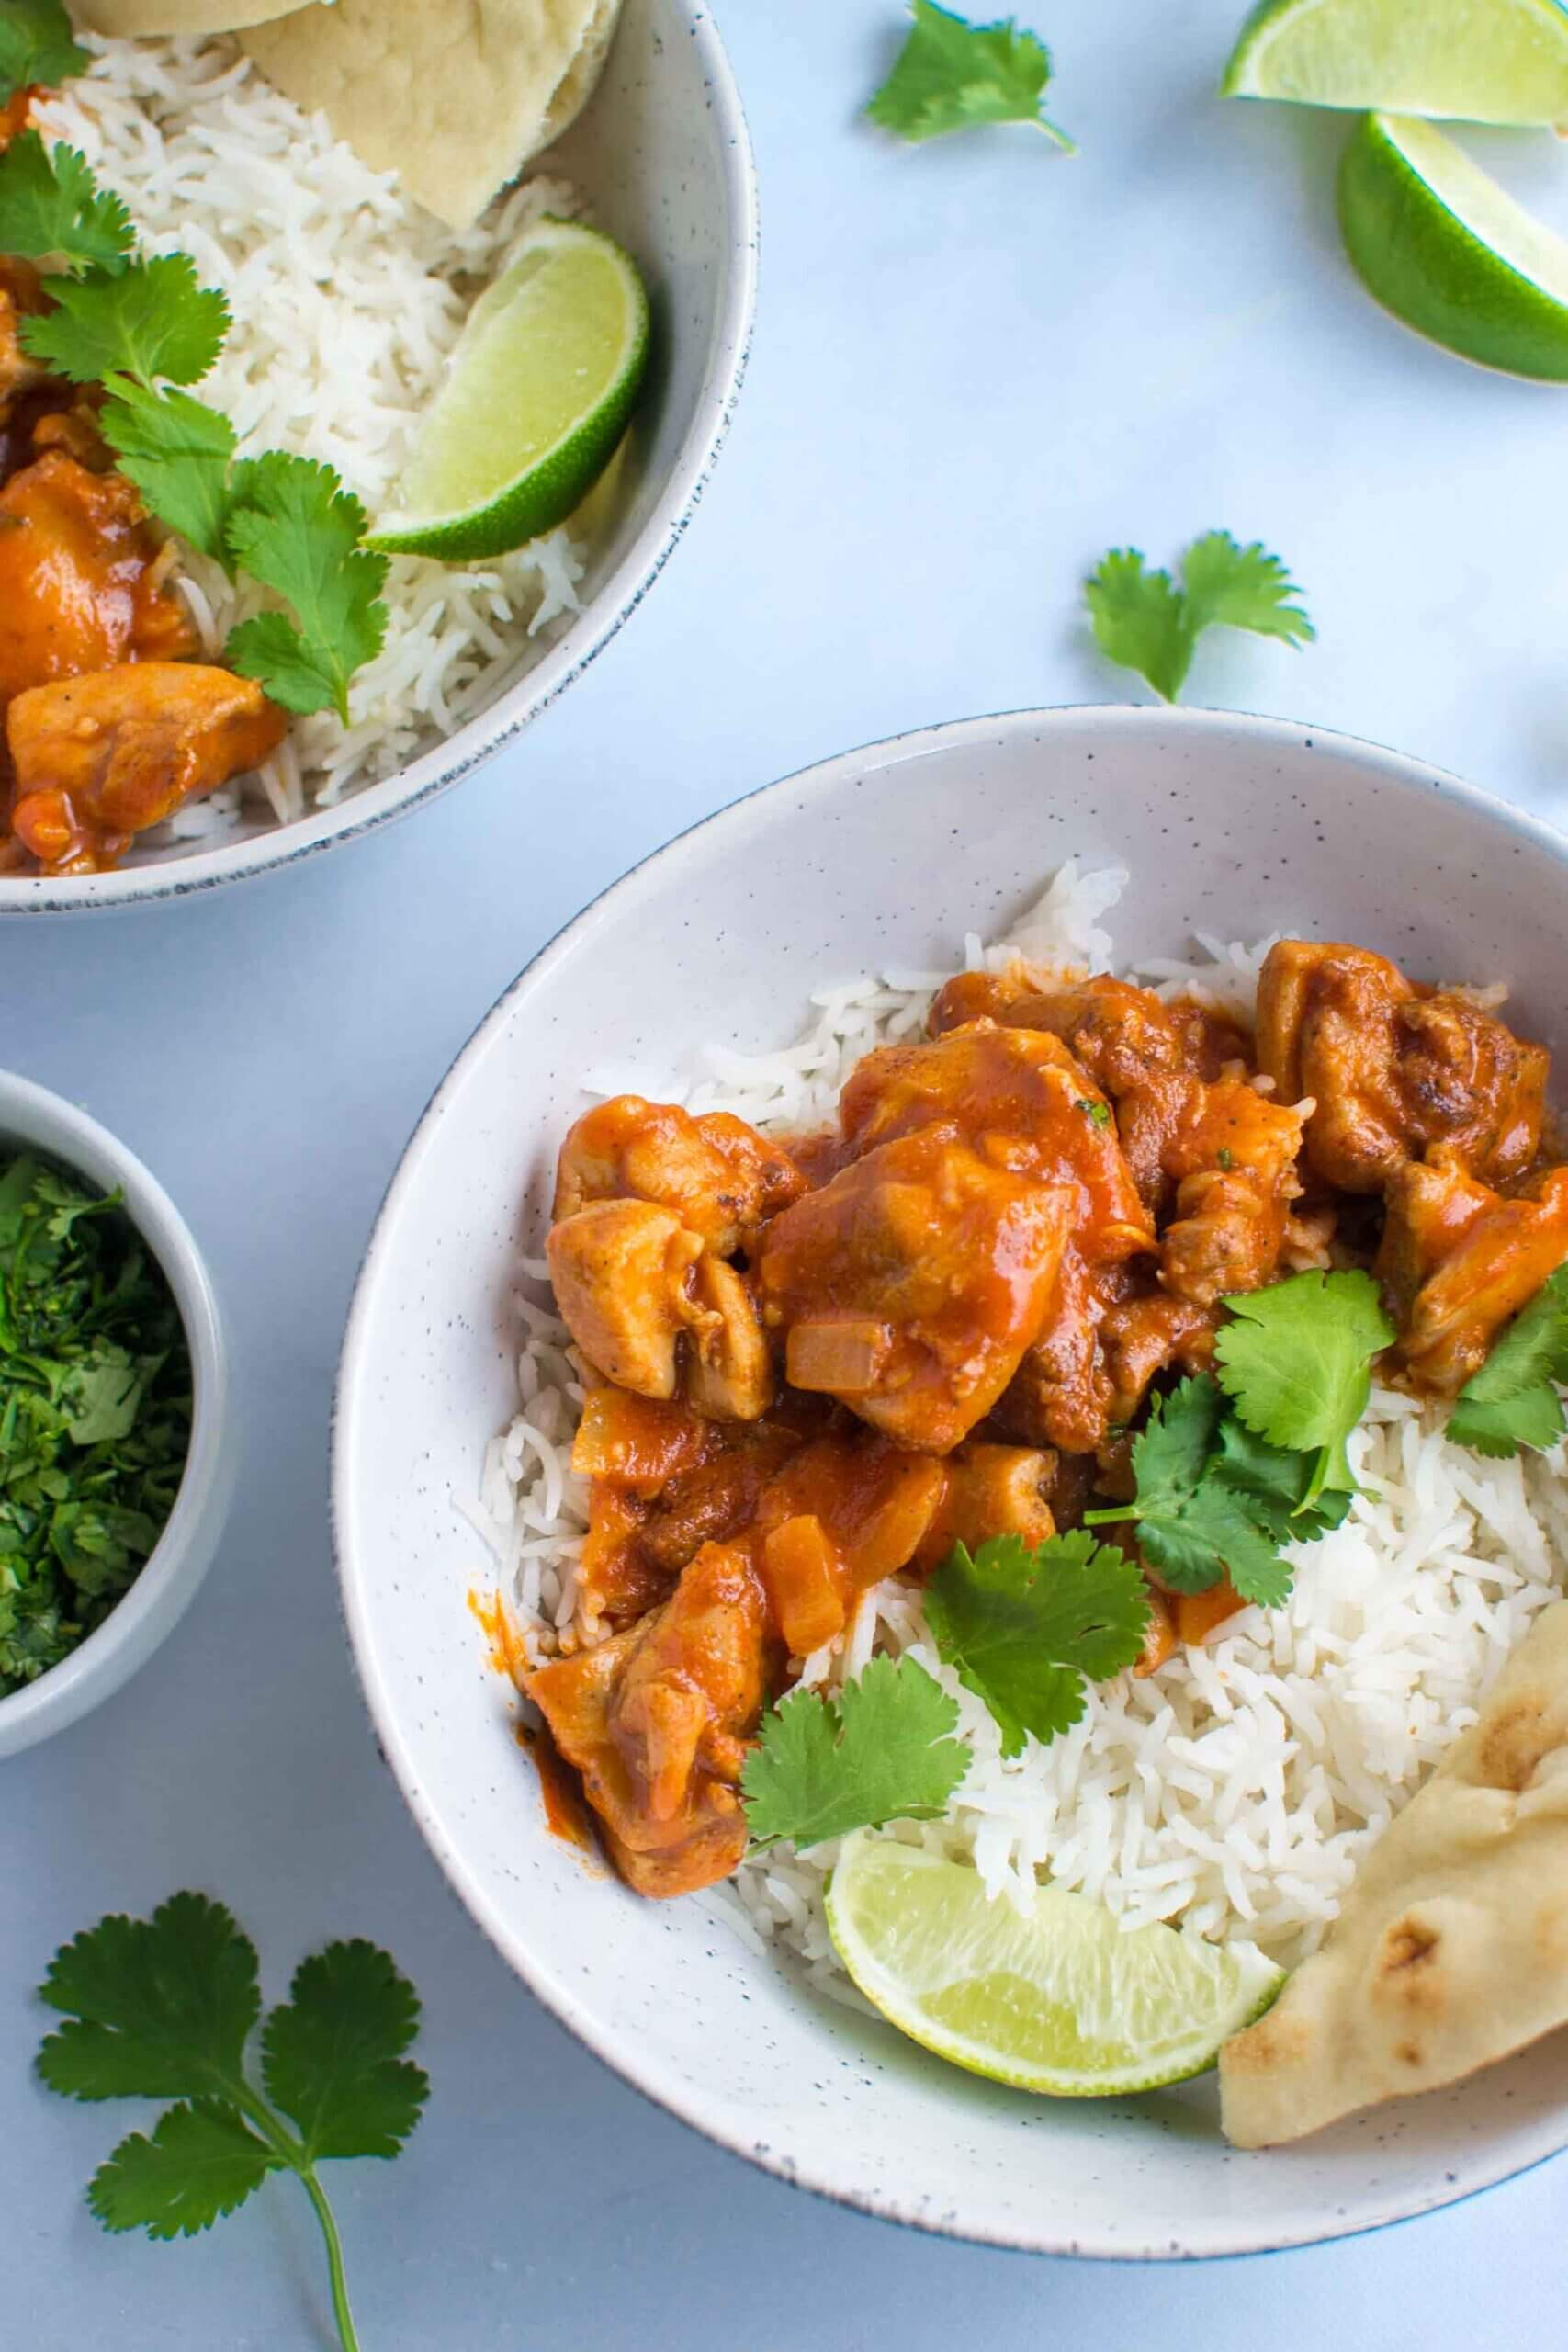 Coconut chicken curry in a bowl with rice, cilantro and naan bread